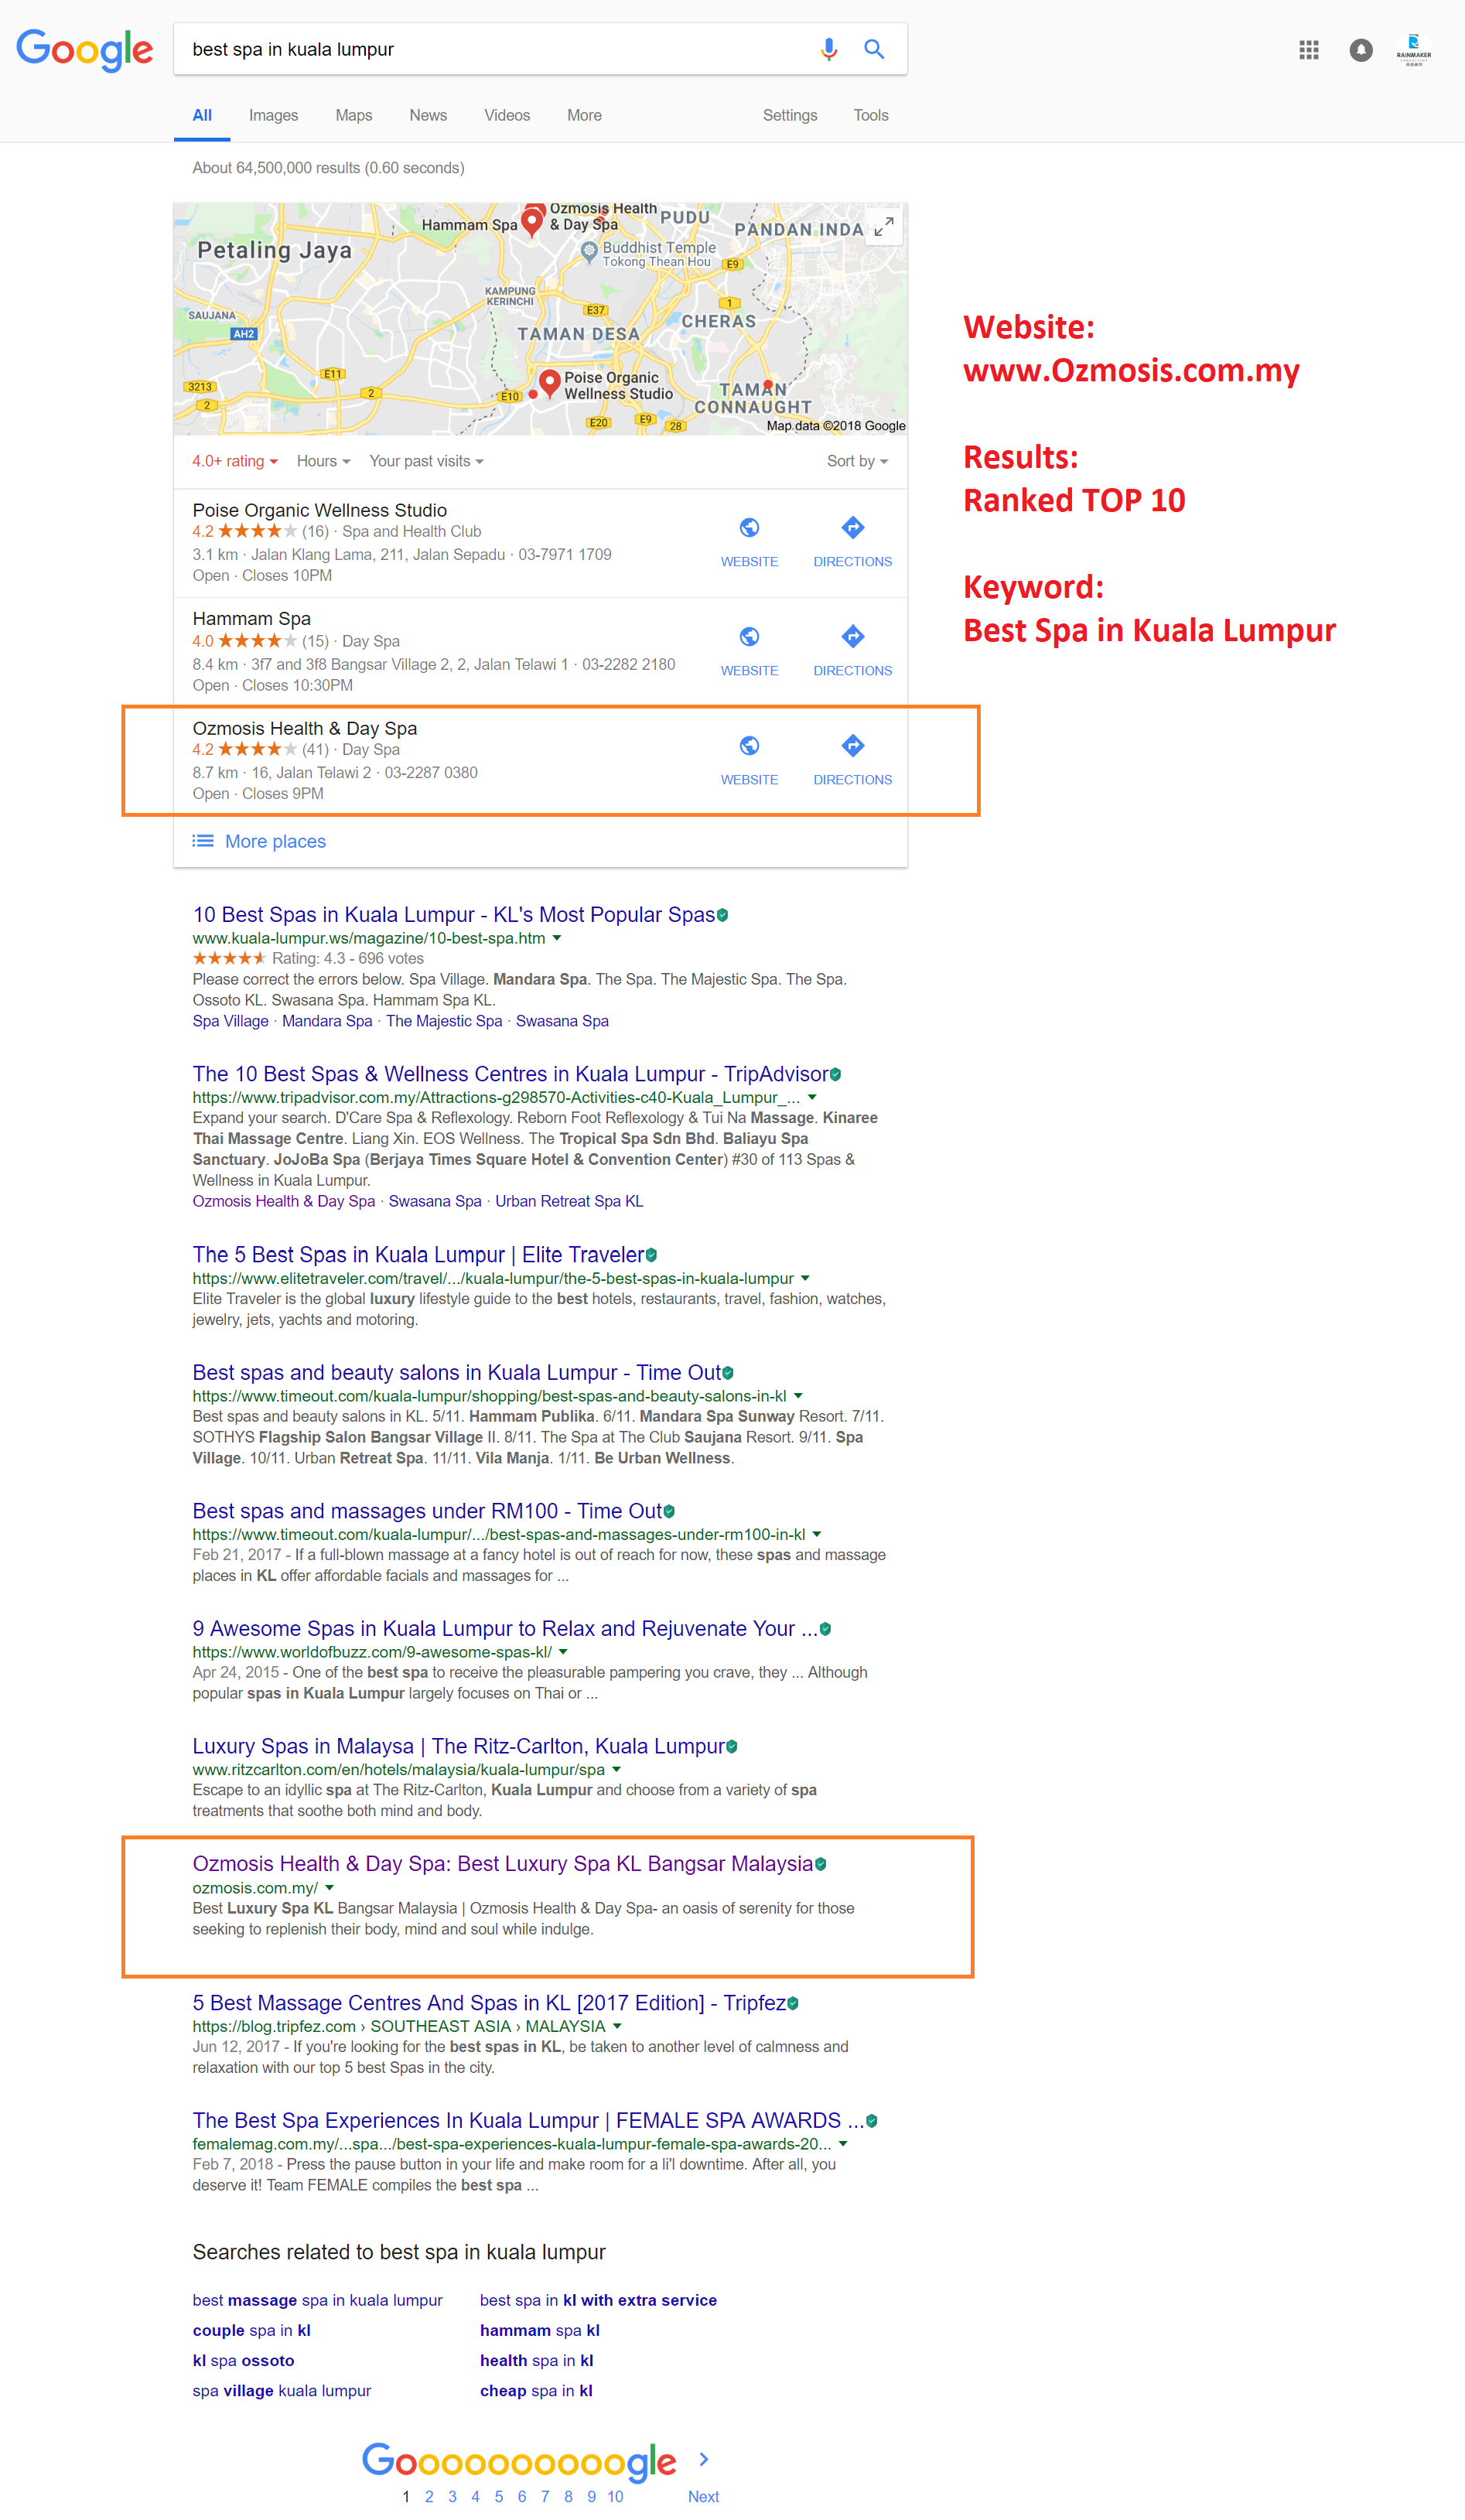 Best Spa in Kuala Lumpur- Google Search Proven Top-10 Result from client Ozmosis Spa_Simple Practical SEO Training That Works_Digital Marketing Workshop Malaysia